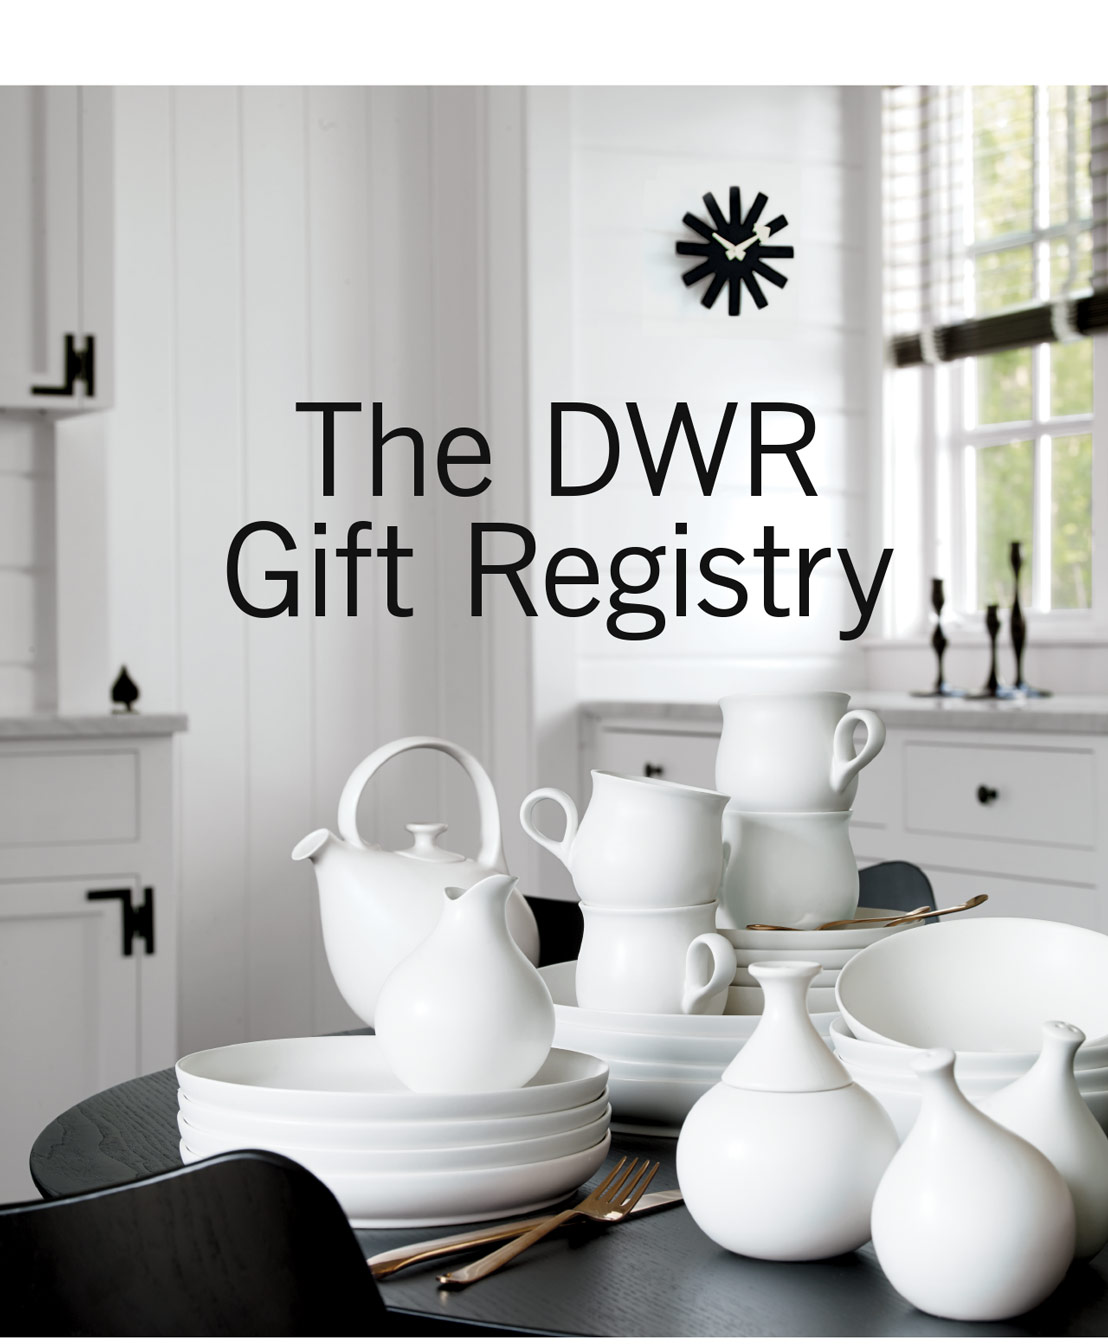 The DWR Gift Registry